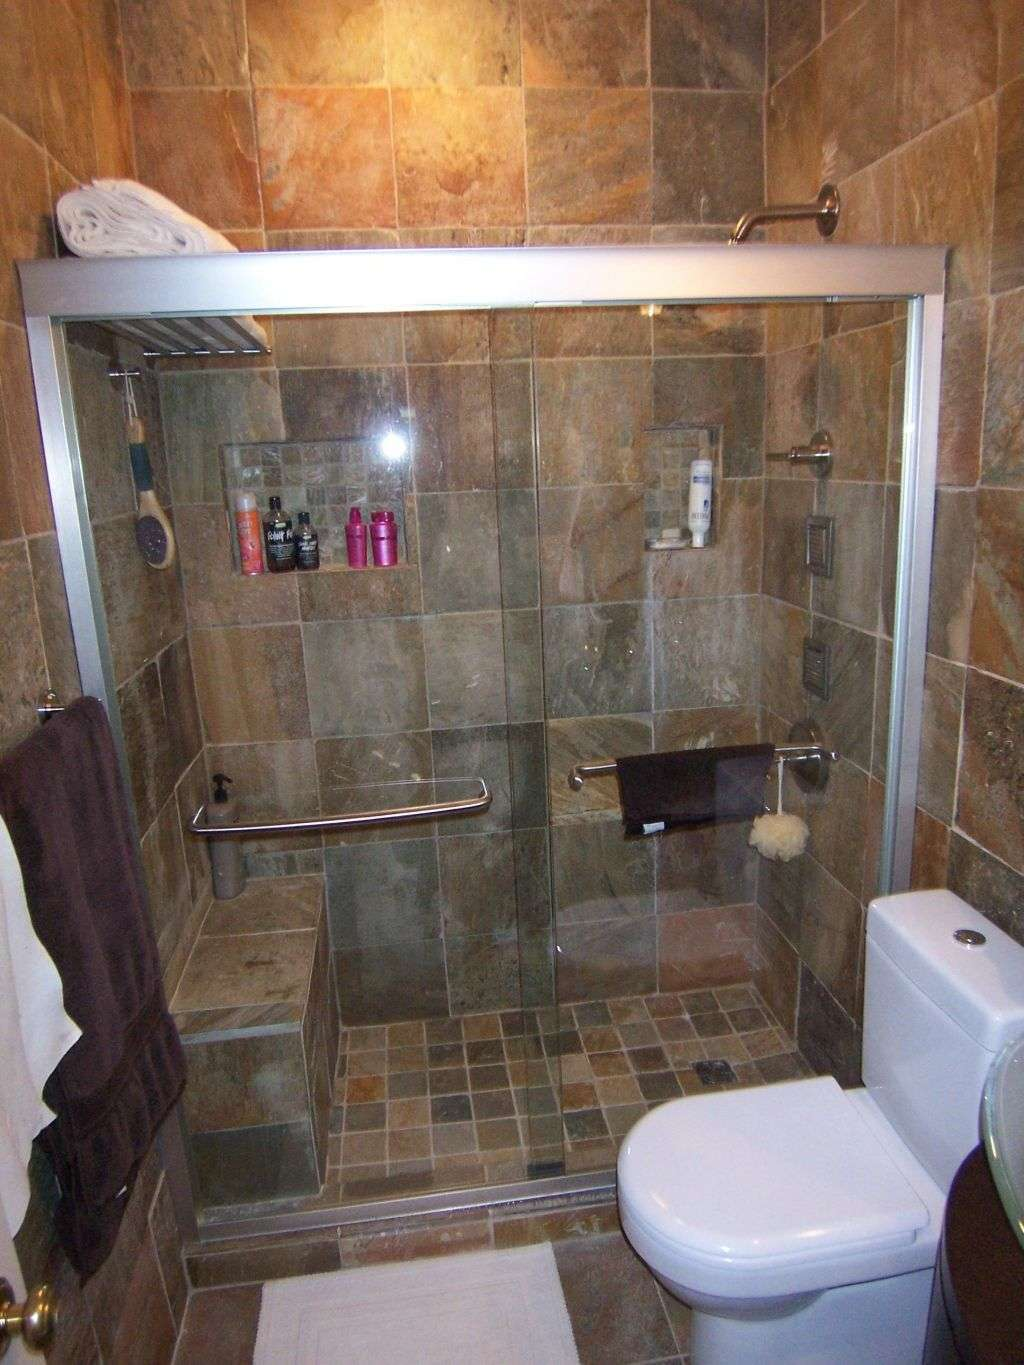 40 wonderful pictures and ideas of 1920s bathroom tile designs Bathroom shower tile designs